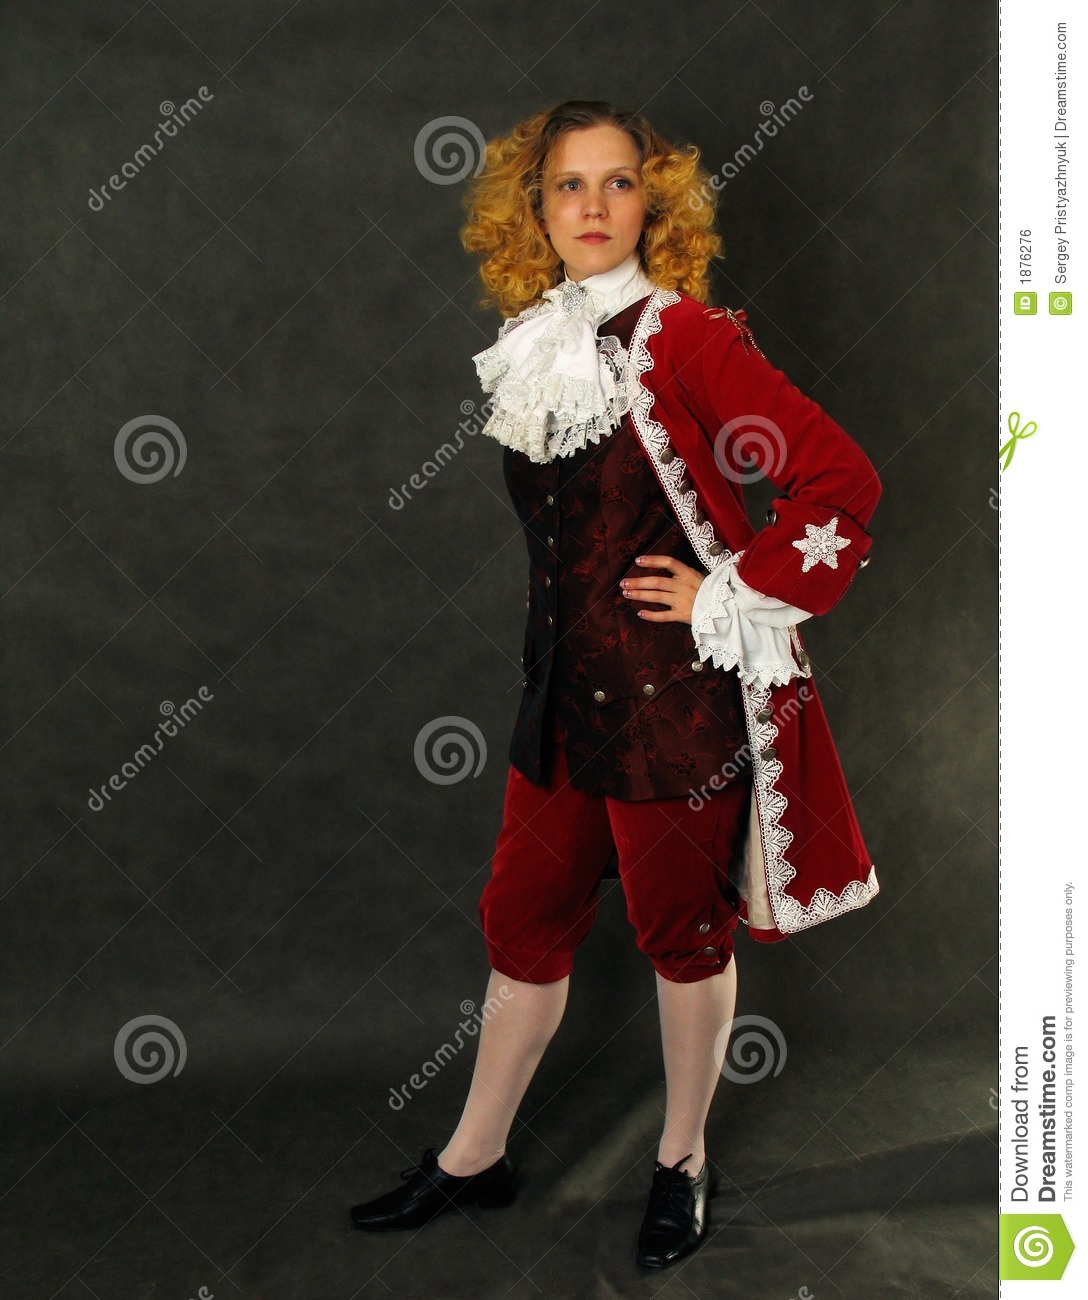 Woman In Old Fashioned French Clothes Royalty Free Stock